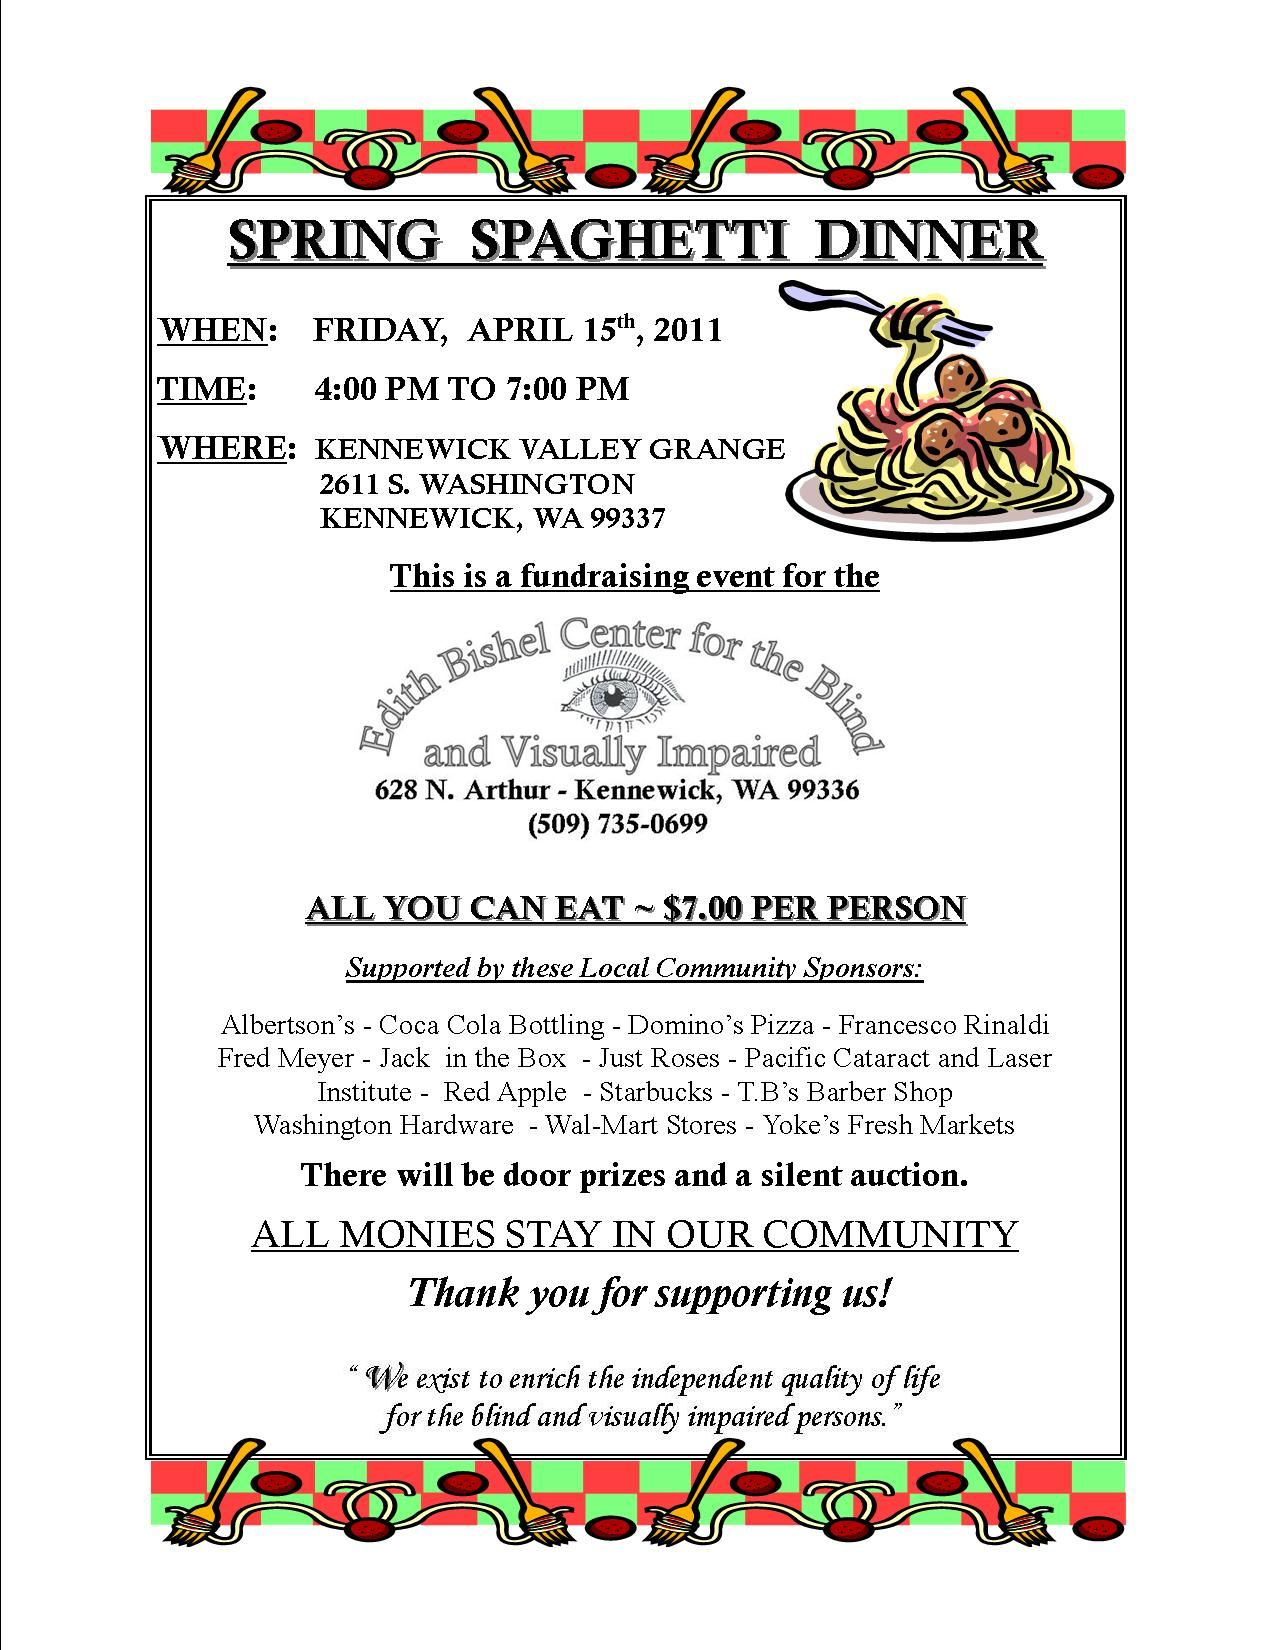 Dinner Fundraiser April   Spring Spaghetti Dinner Fundraiser